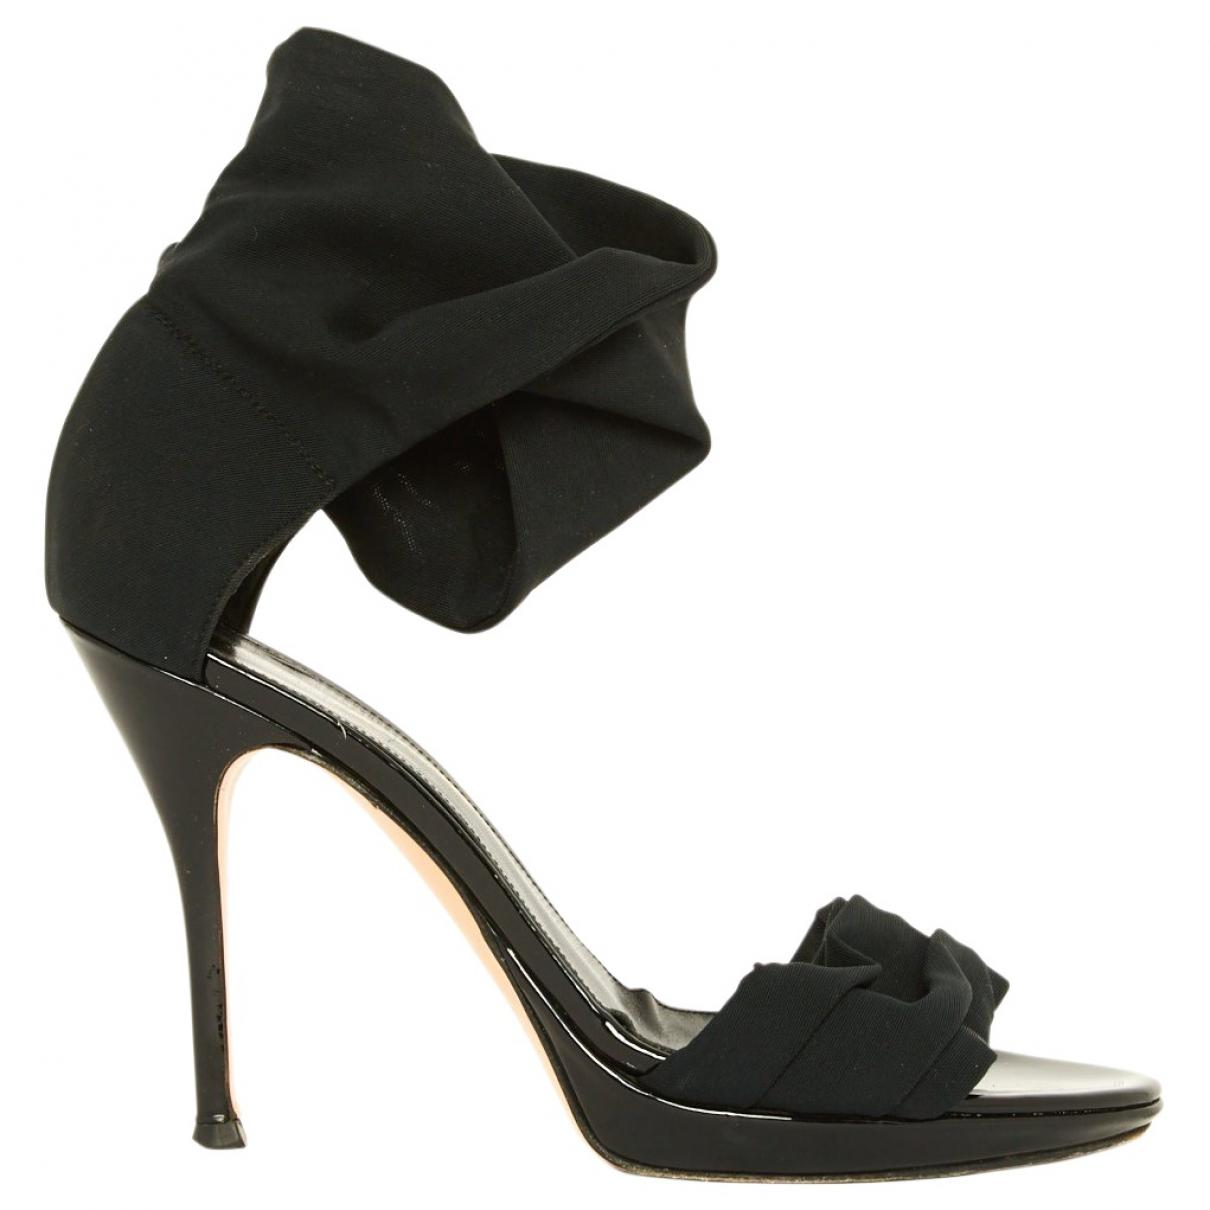 Pre-owned - CANVAS SANDALS Gianvito Rossi QYrGWkq